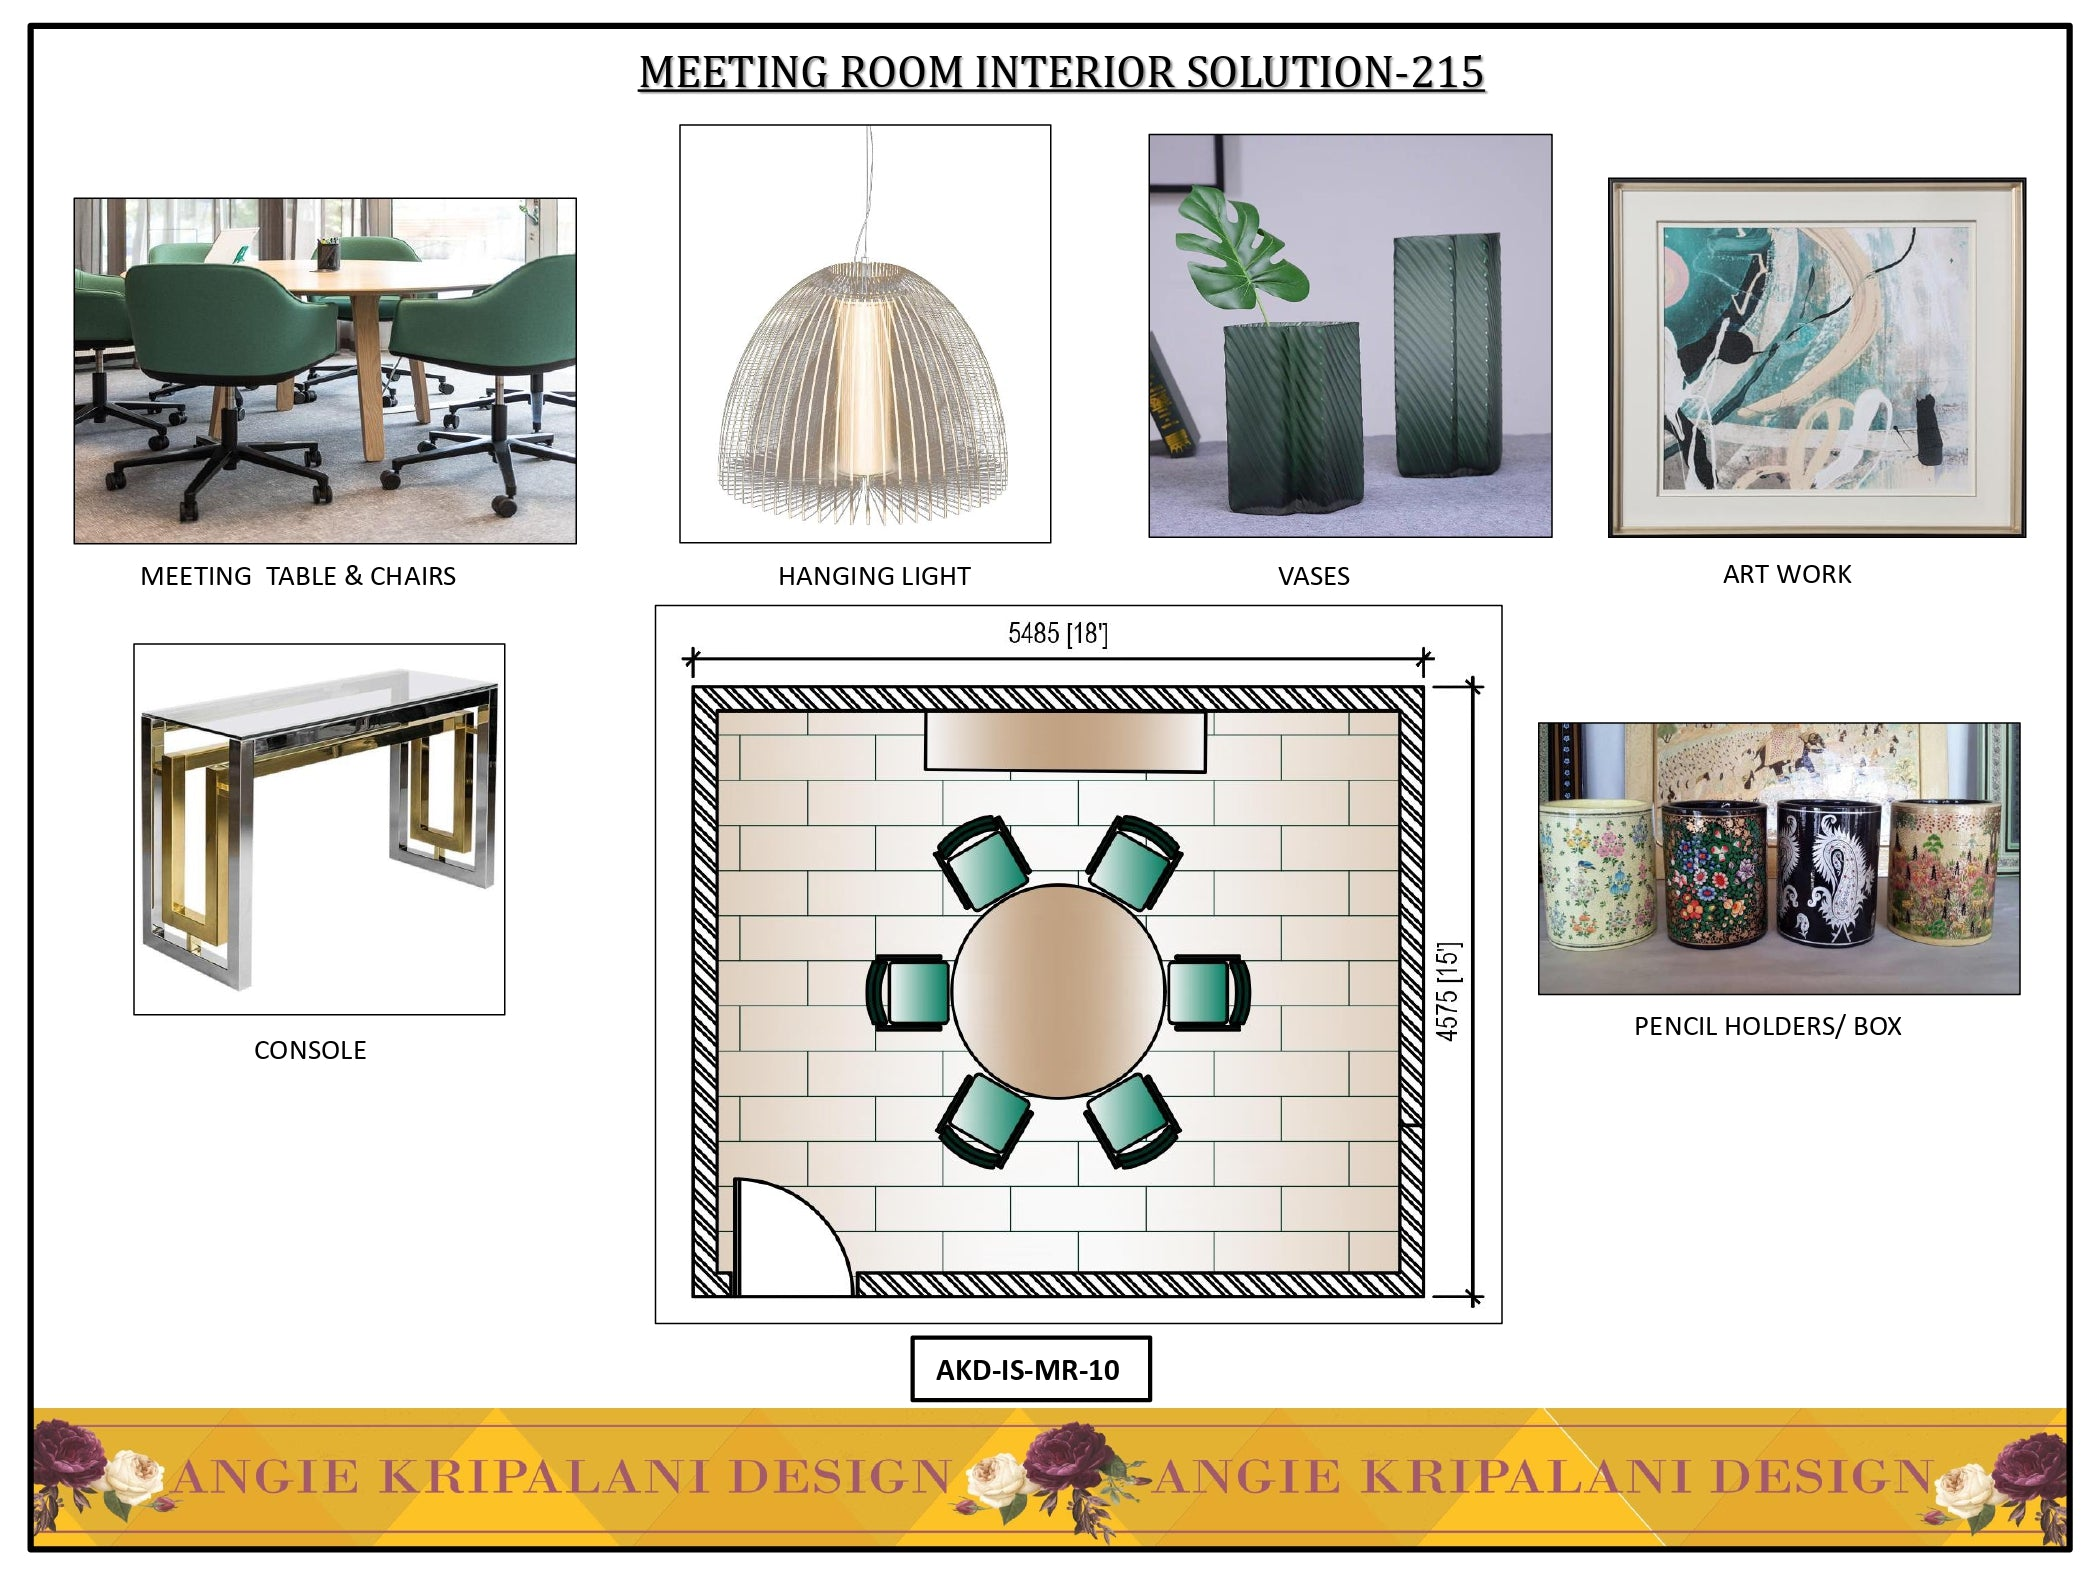 MEETING ROOM INTERIOR SOLUTION-215